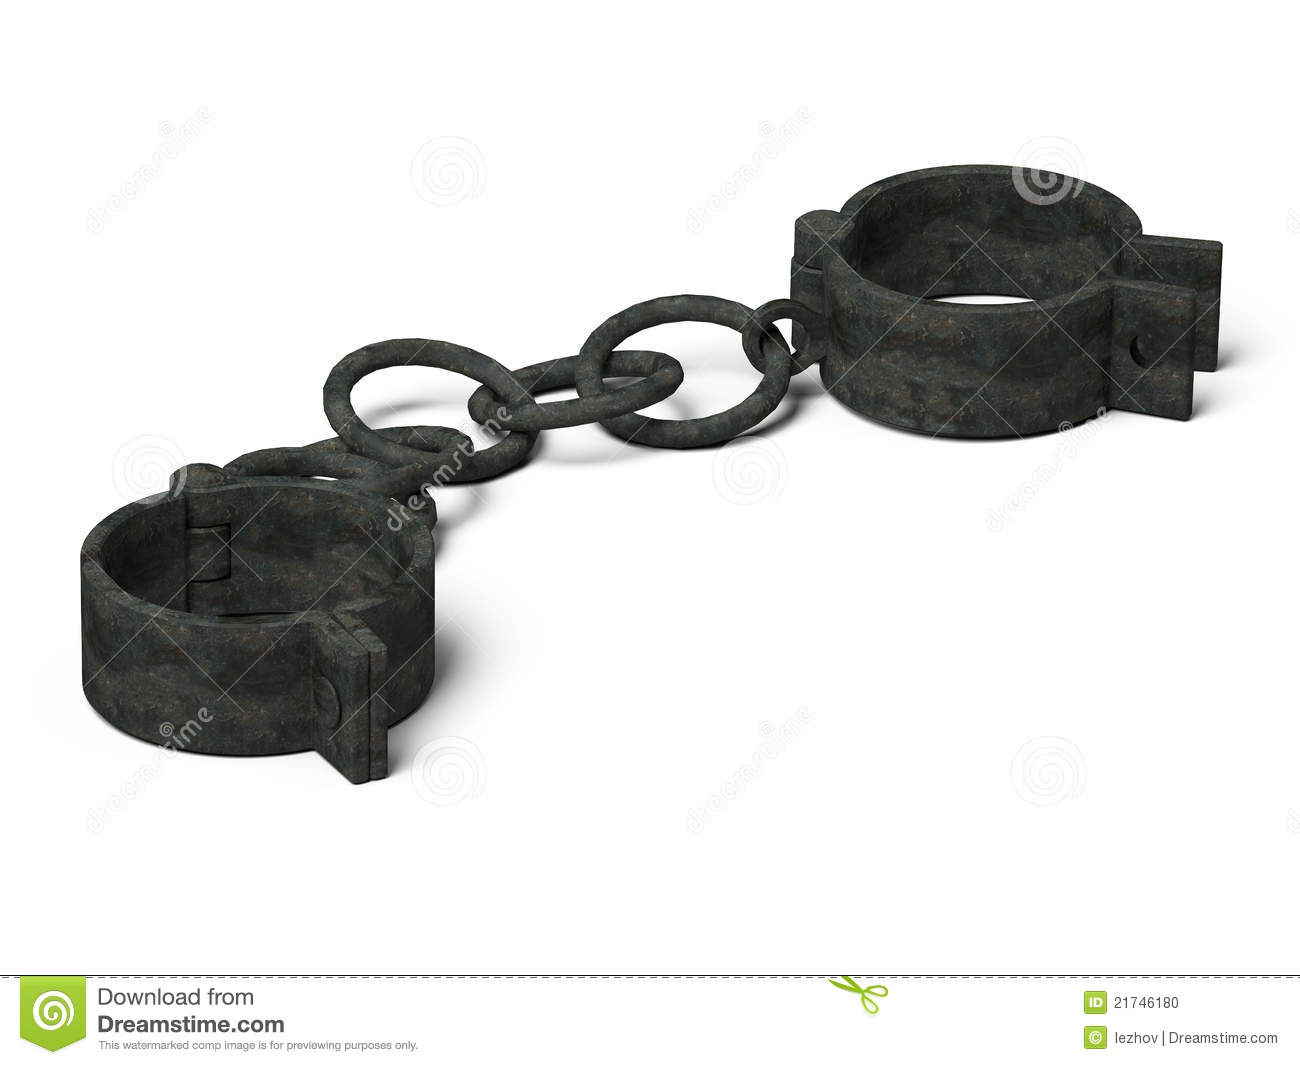 These metal handcuffs are making my wrists hurt joi - 4 8